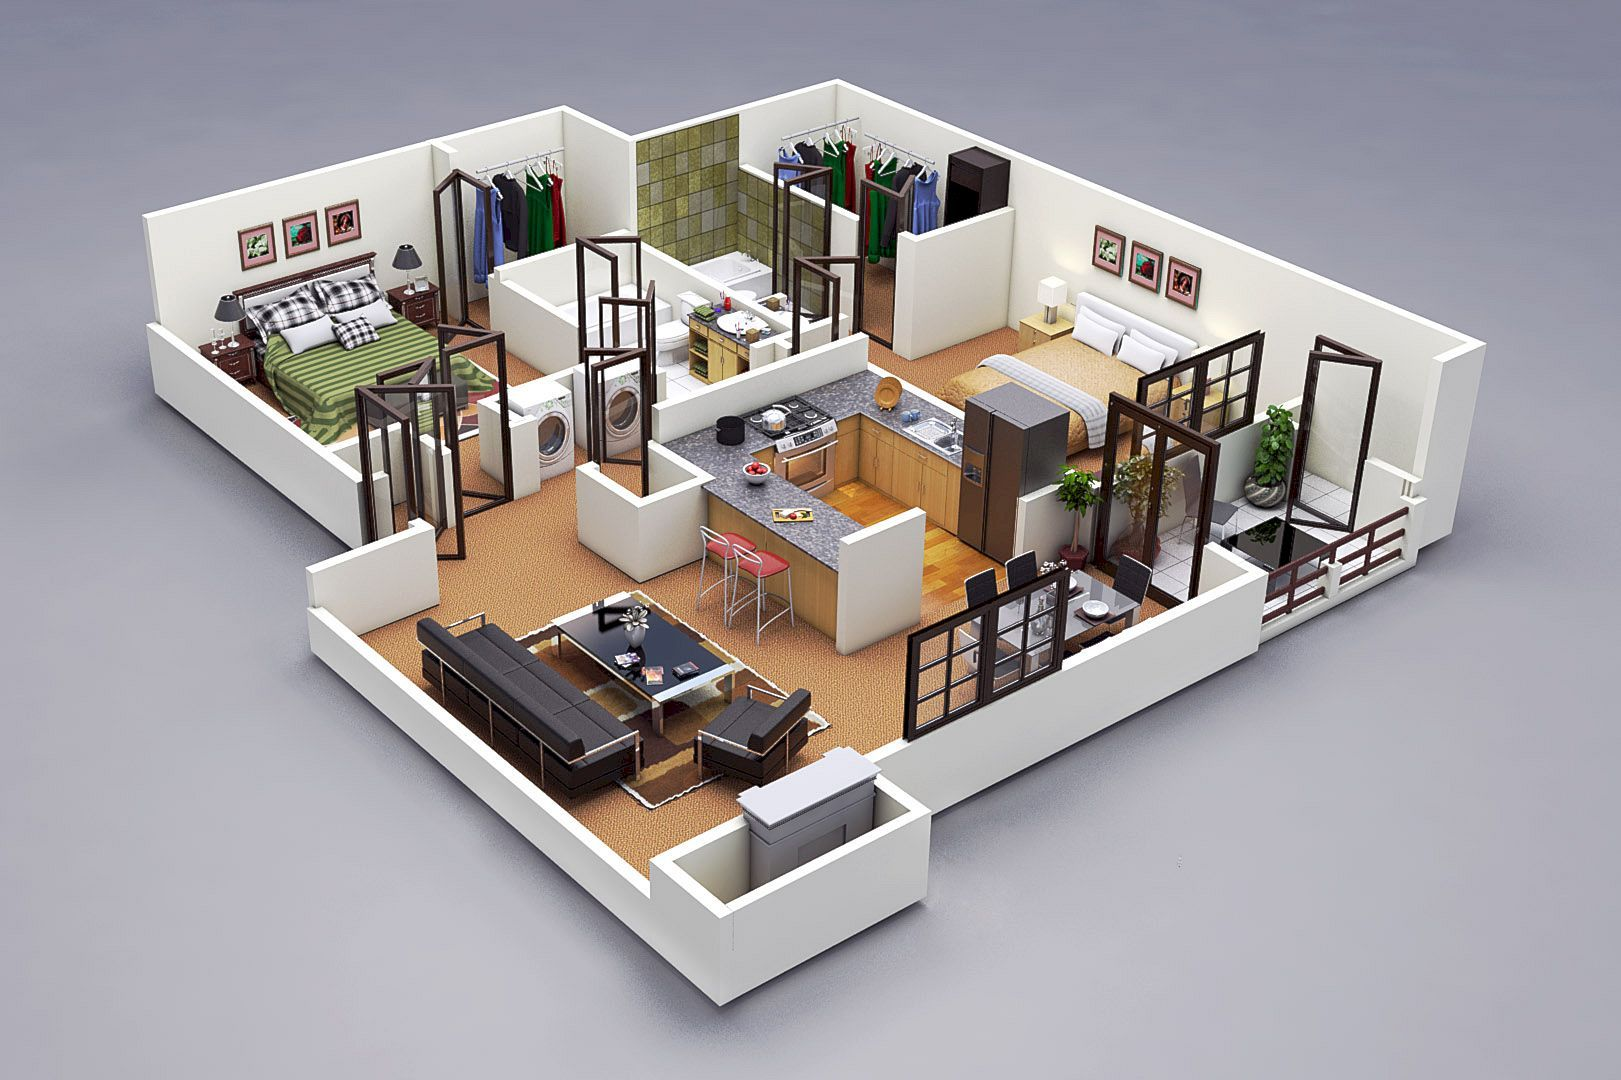 Why Do We Need 3d House Plan Before Starting The Project Apartment Floor Plans 3d House Plans Home Design Plans